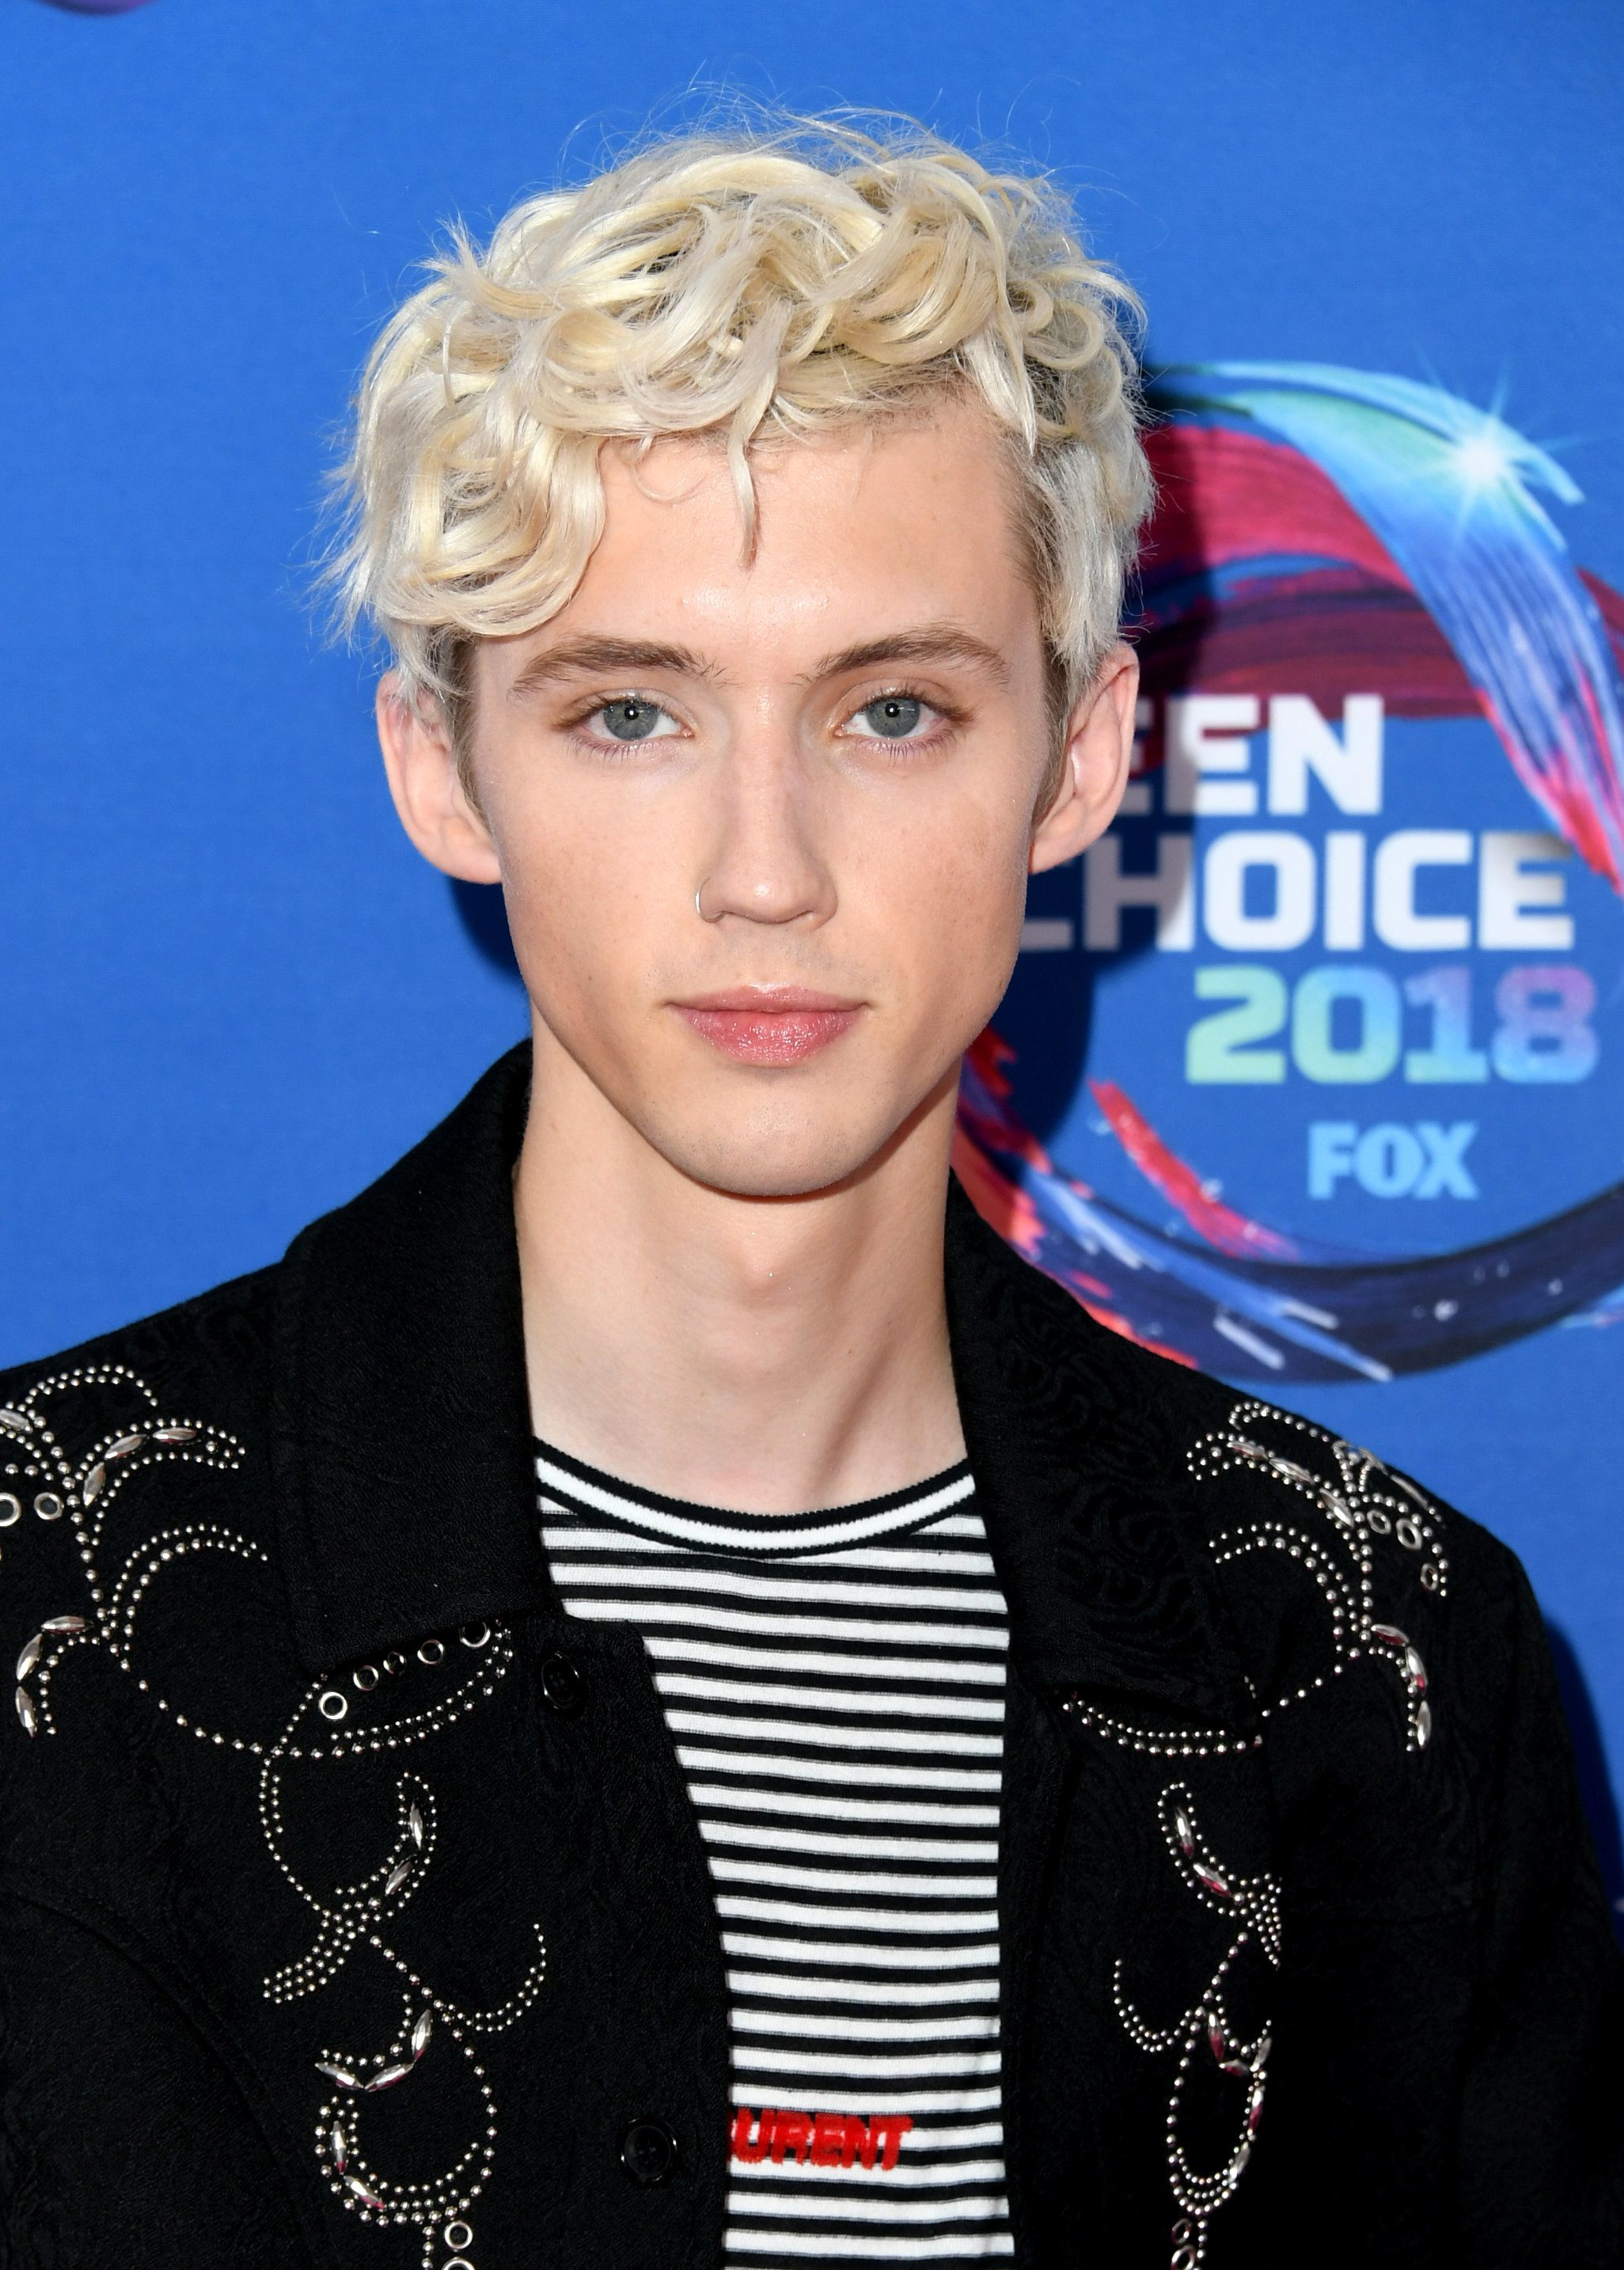 """I want to make music for people like me, and make something real about what's actually going on in my life,"" Troye Siv"